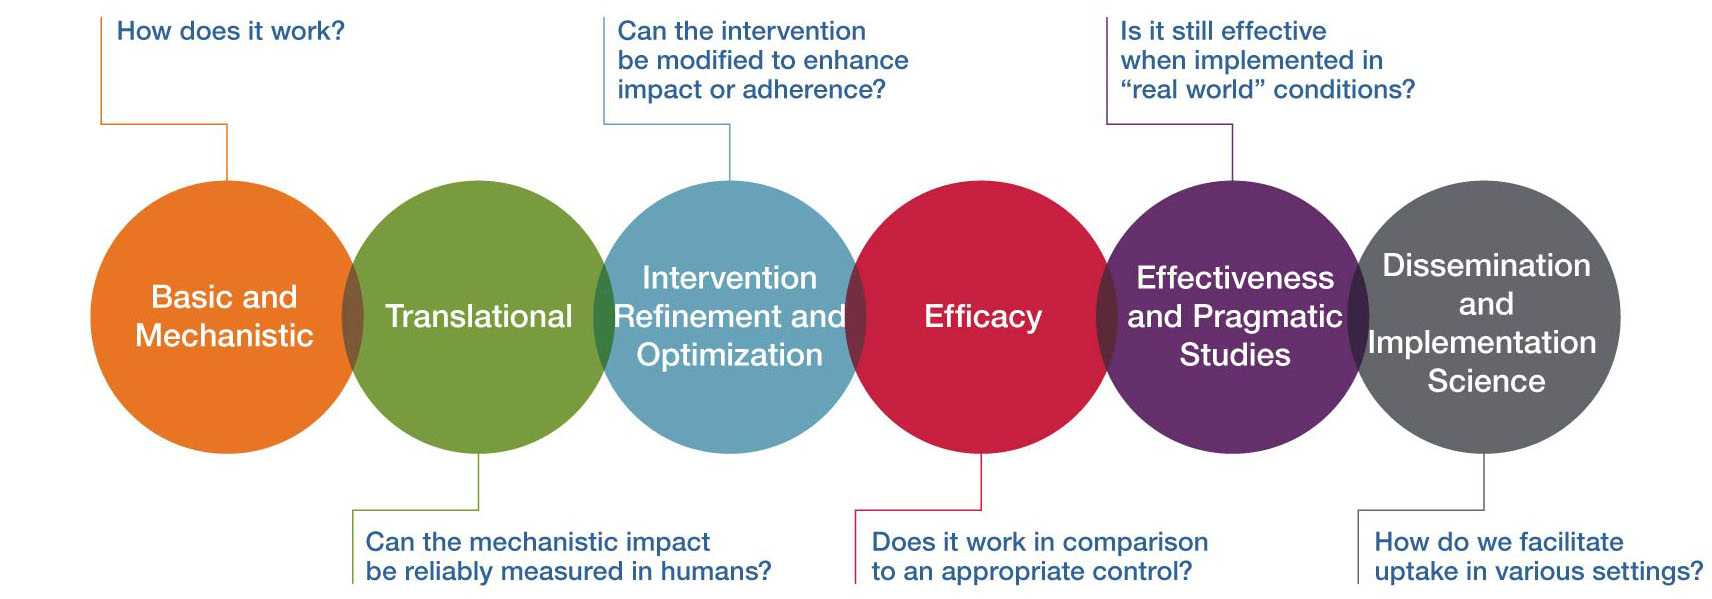 NCCIH Framework for Clinical Research